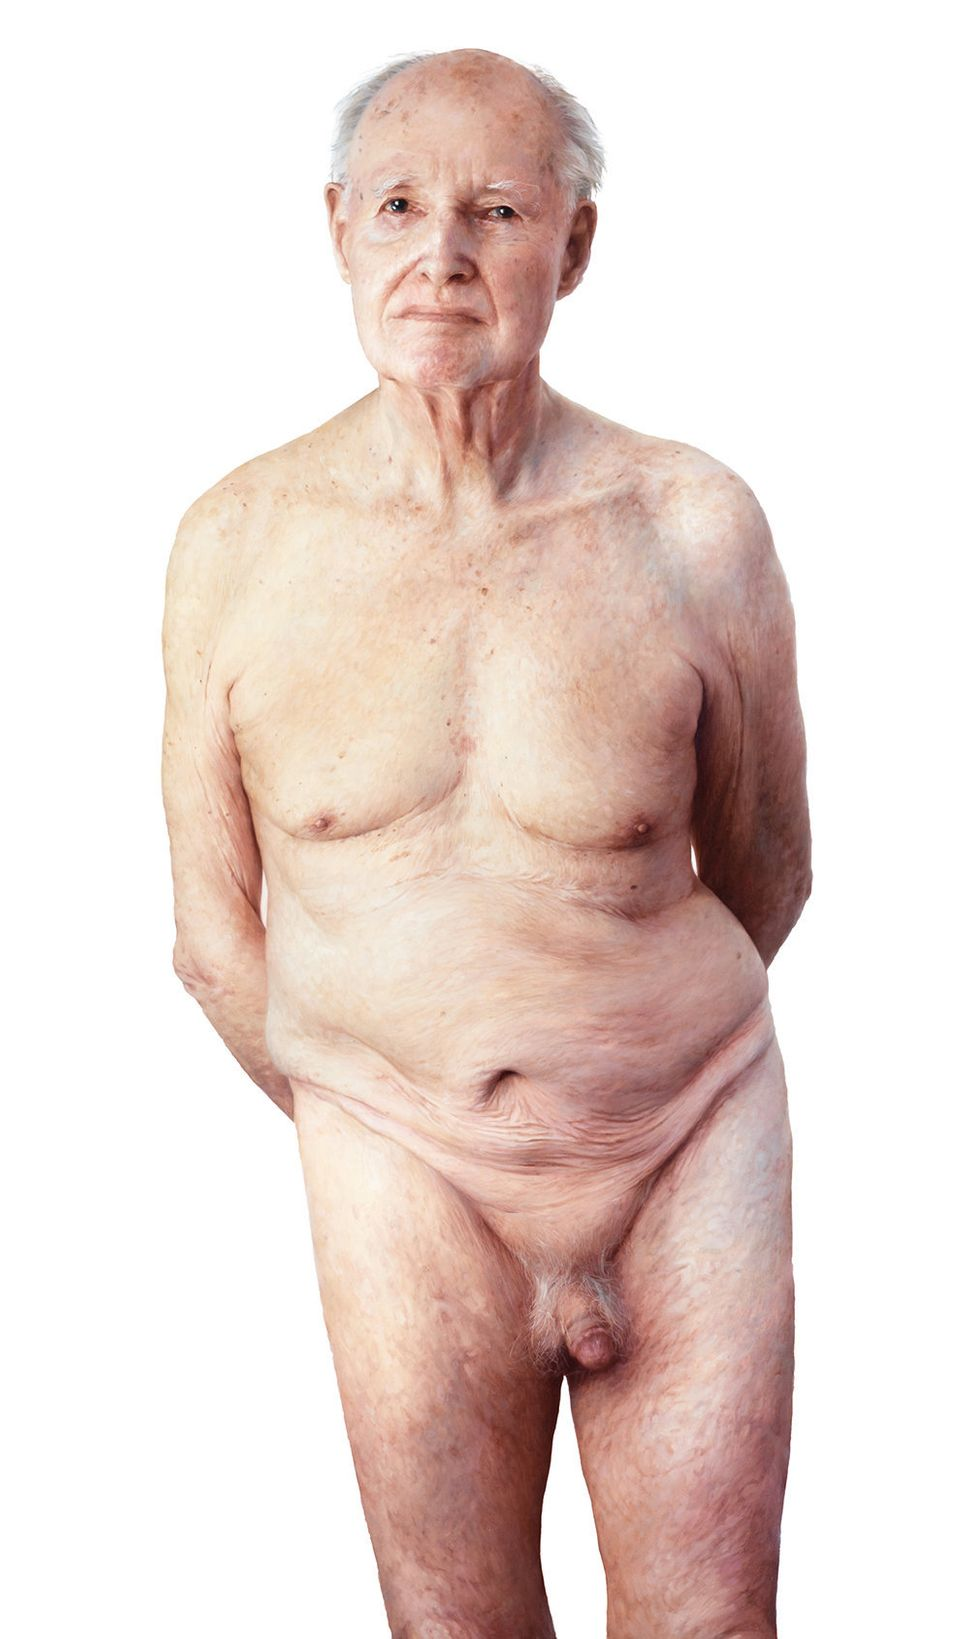 Nude Pictures Of Old People 120